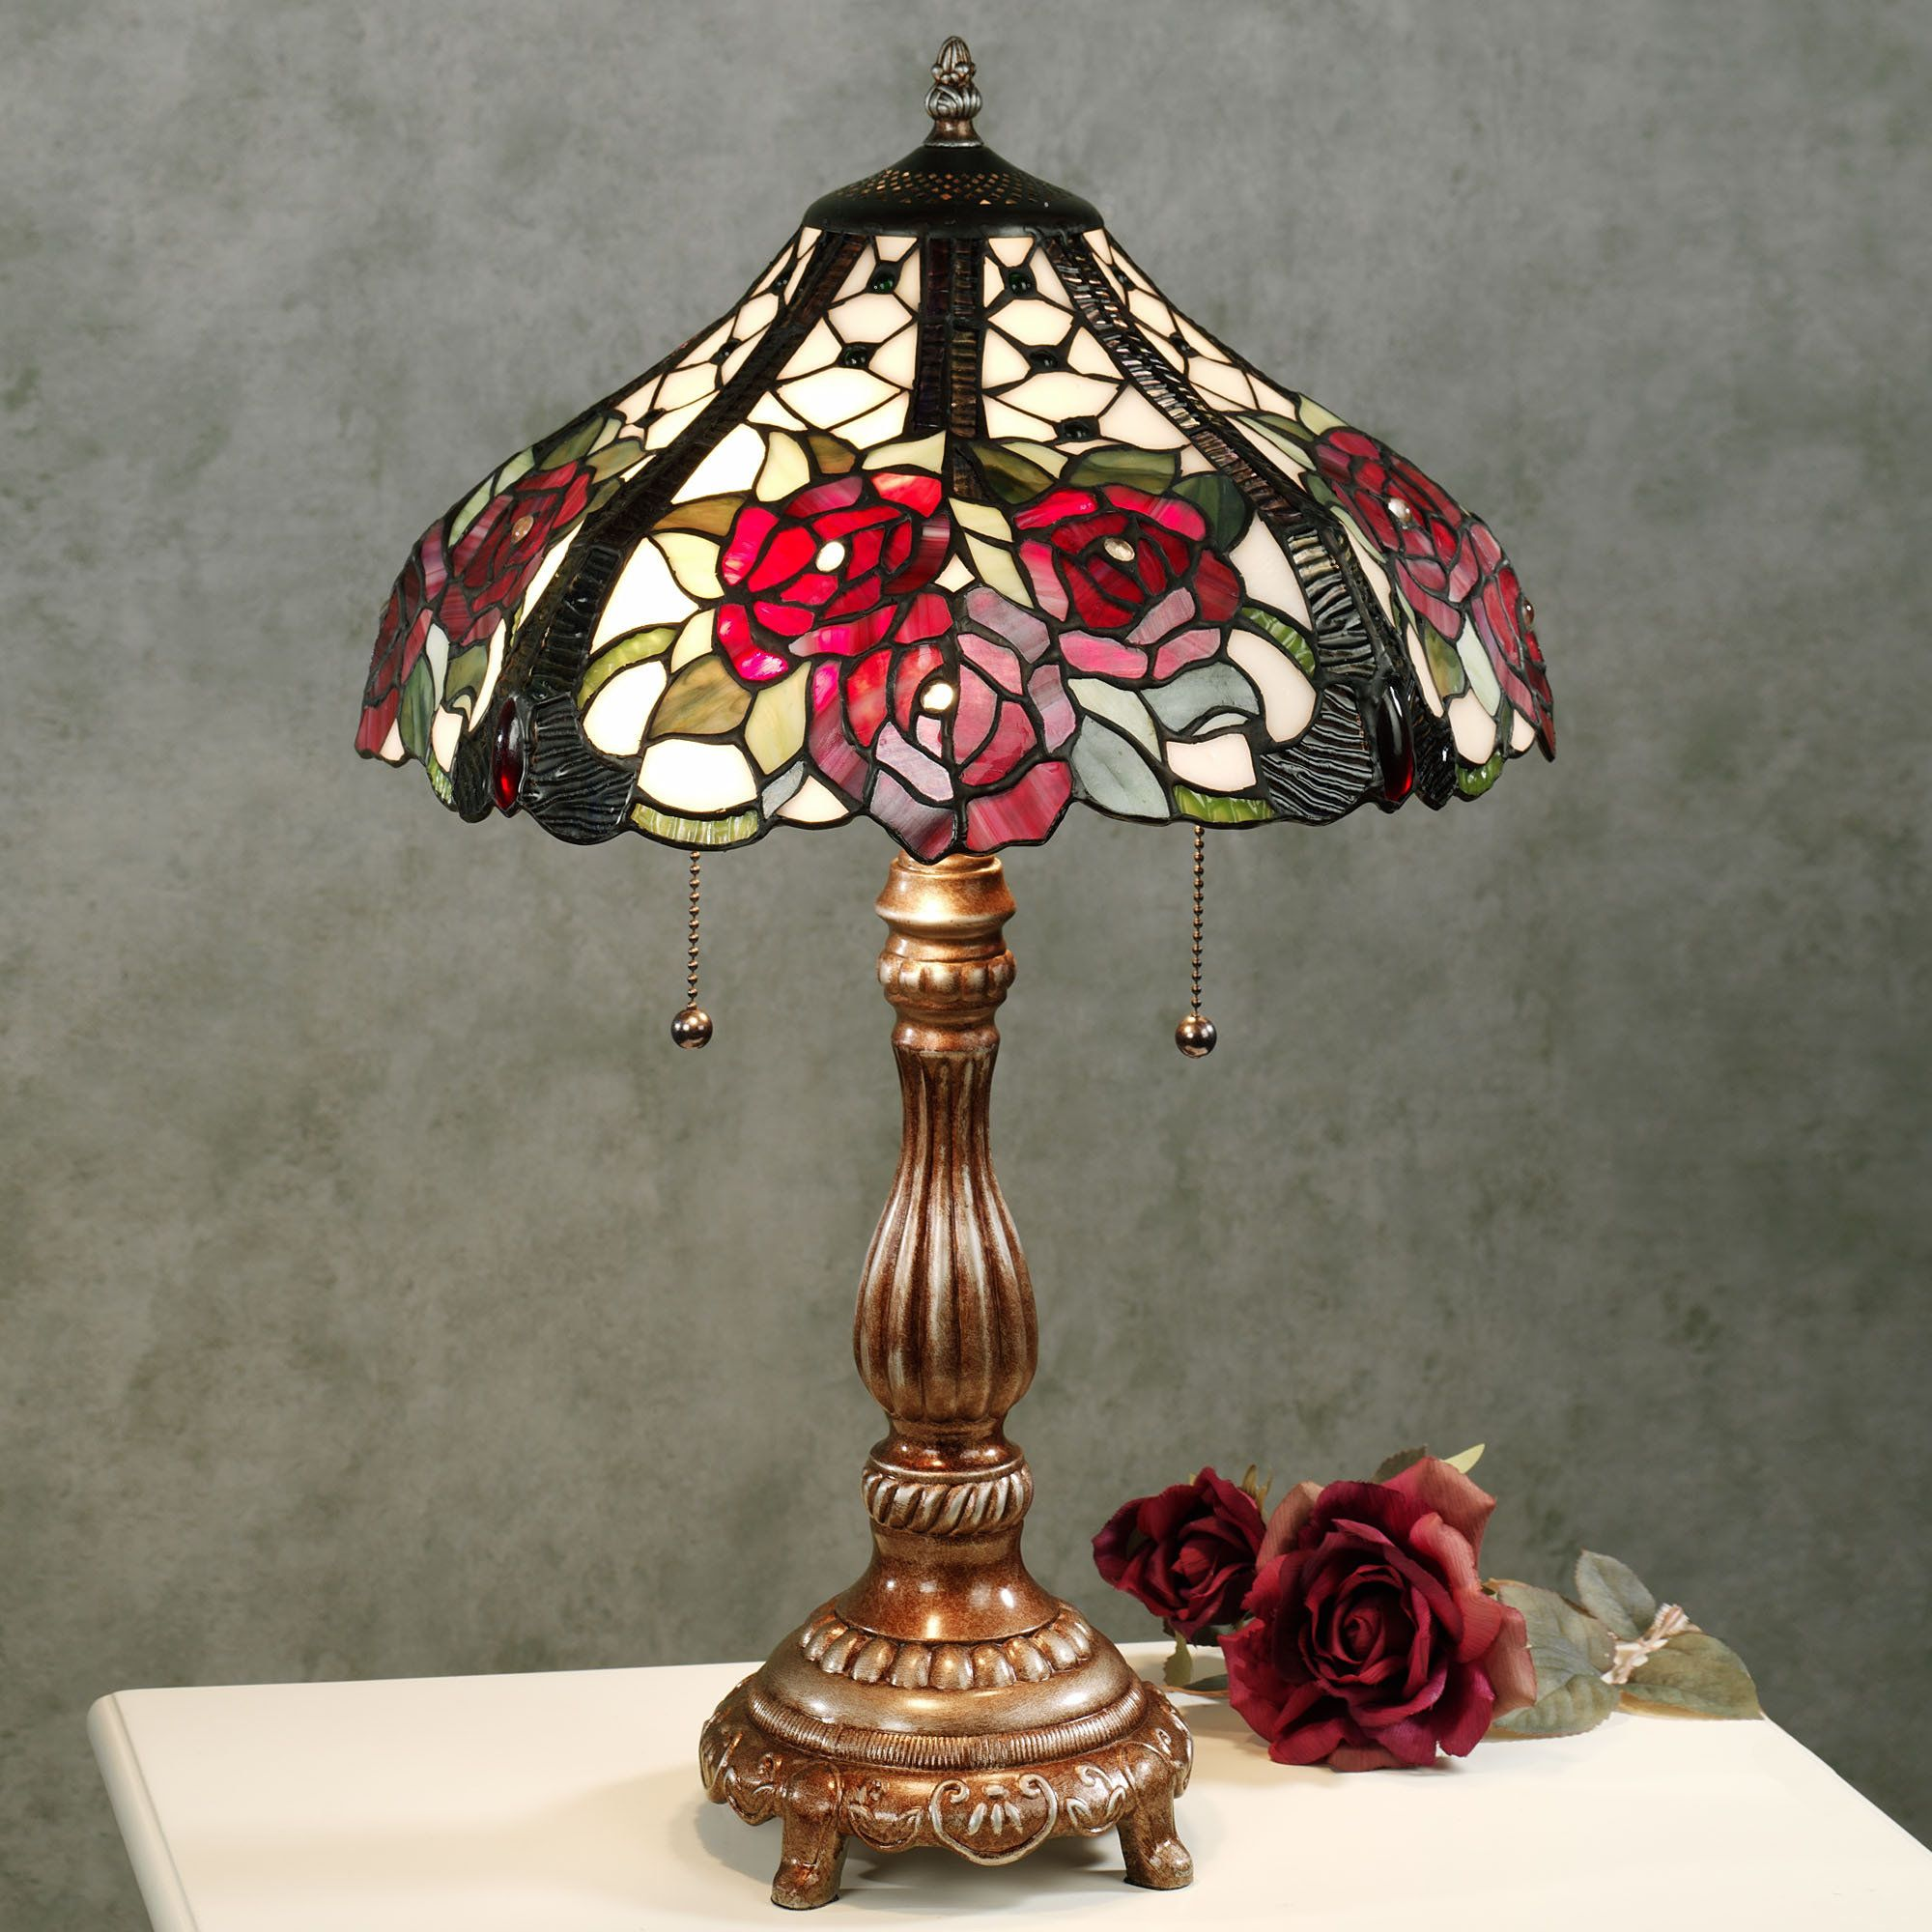 Exceptional Rosalee Bouquet Stained Glass Table Lamp With CFL Bulbs